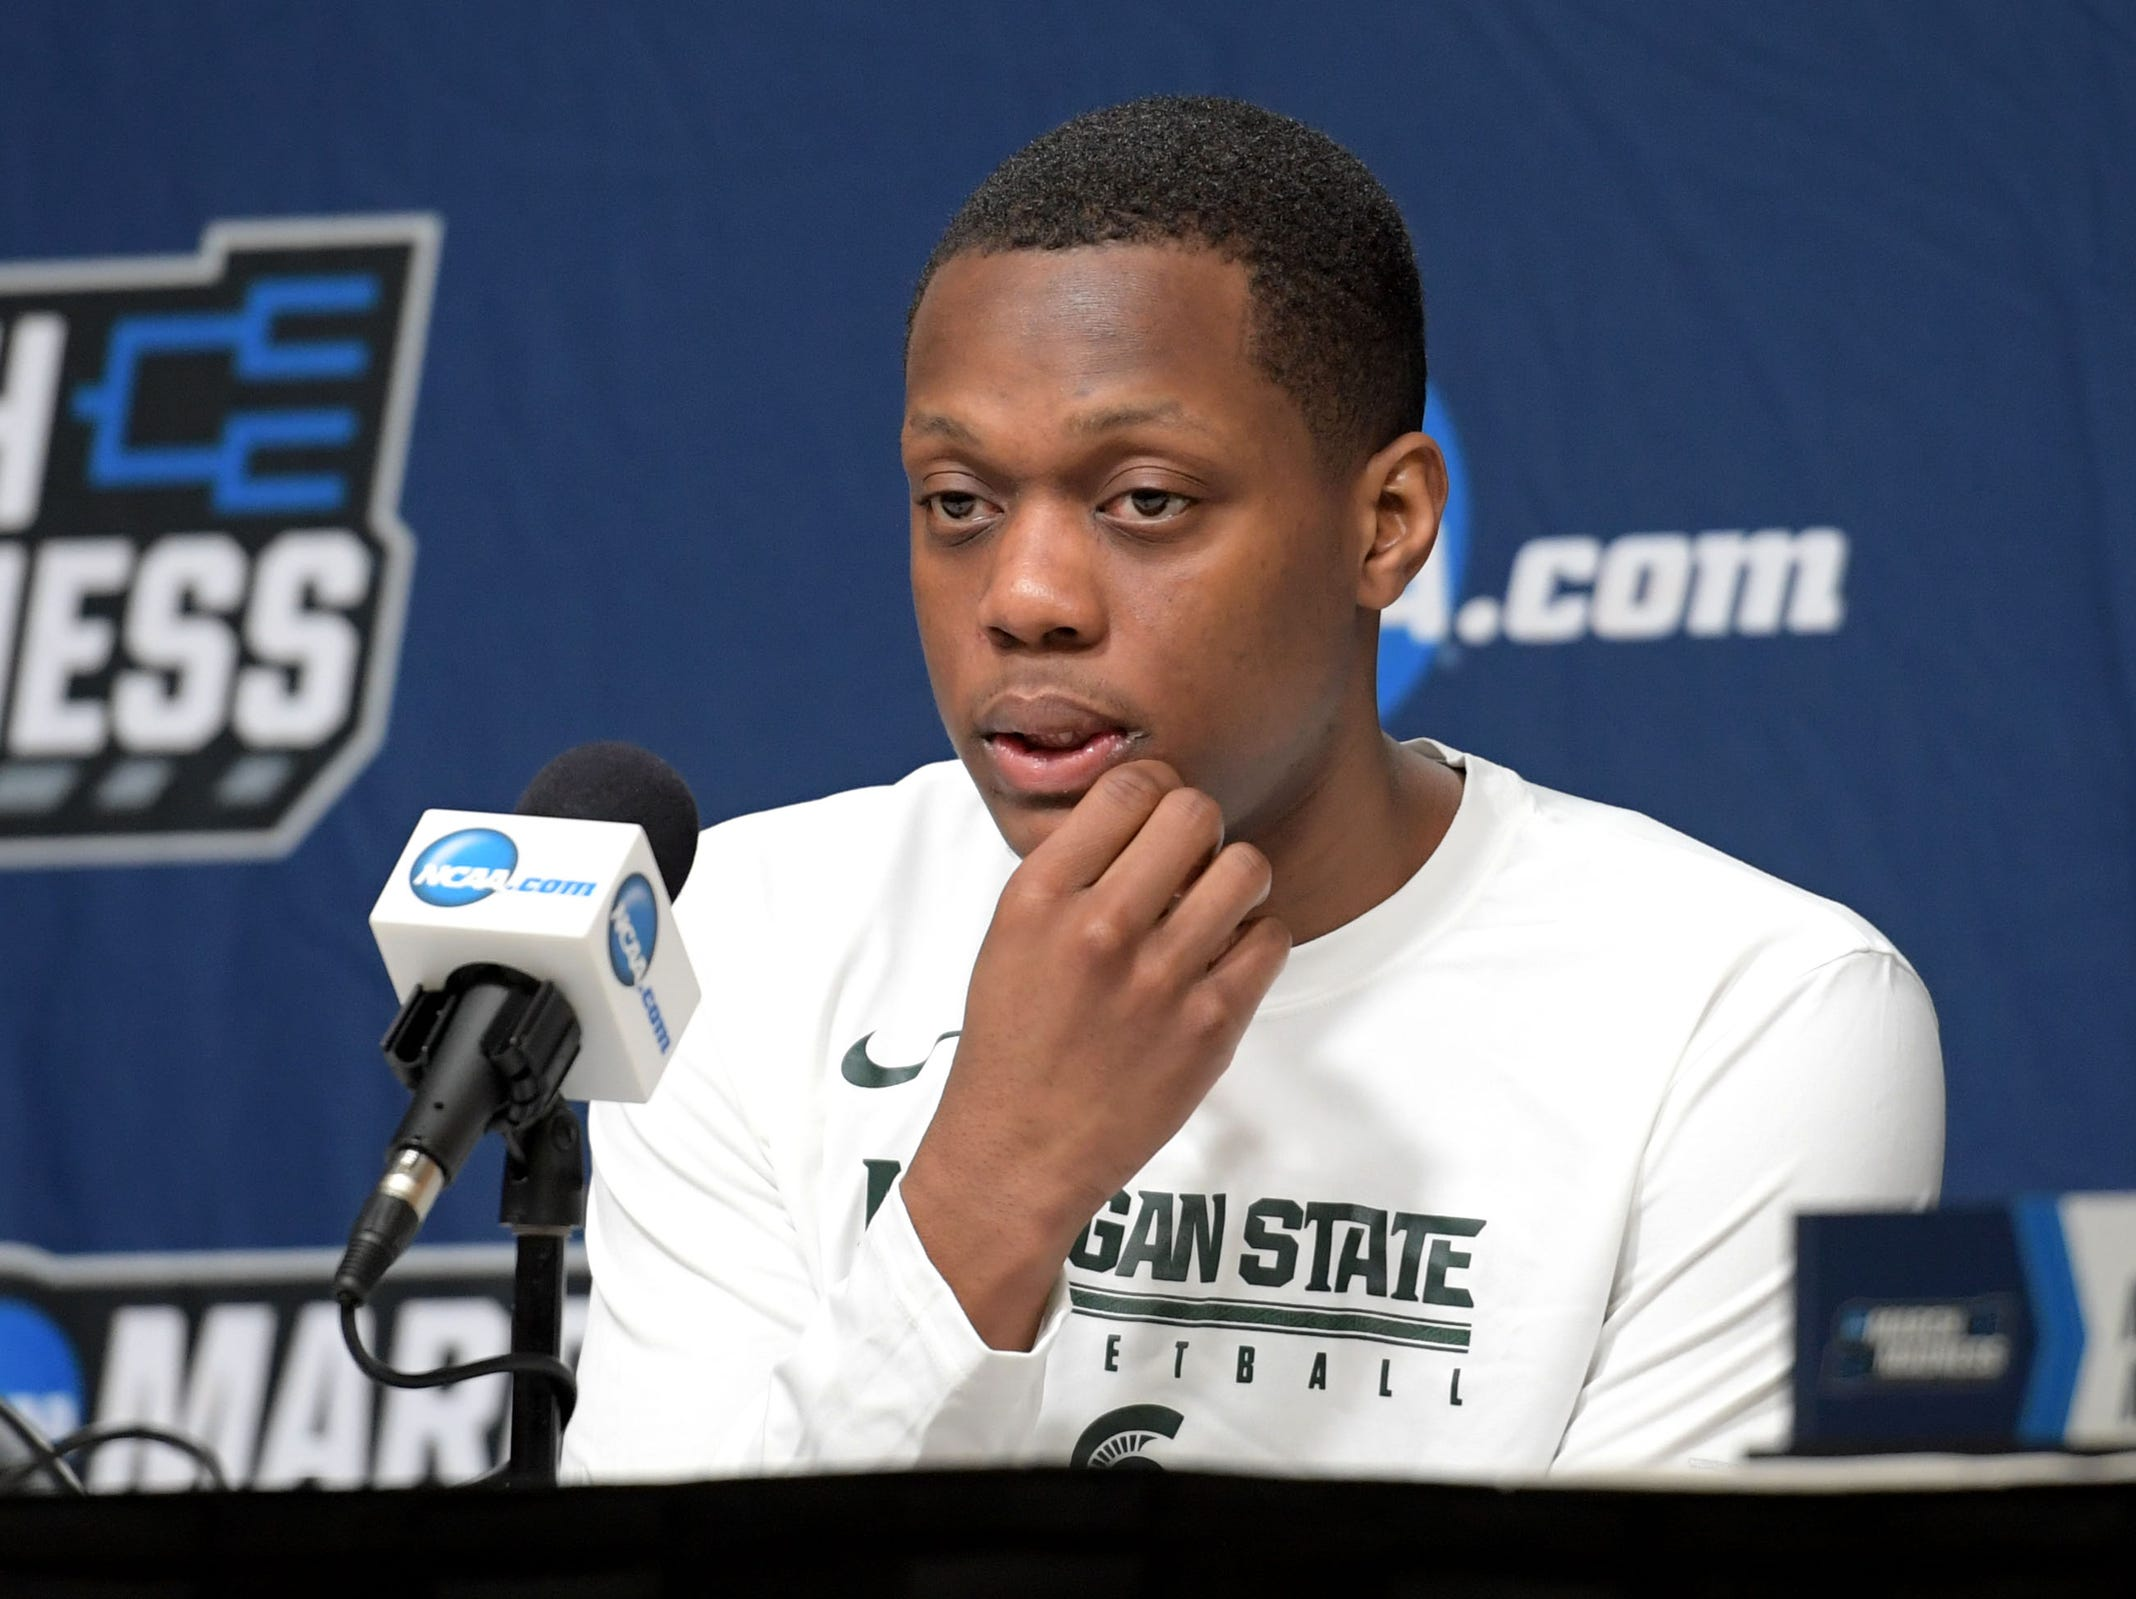 Mar 20, 2019; Des Moines, IA, USA; Michigan State Spartans guard Cassius Winston (5) speaks in a press conference during practice before the first round of the 2019 NCAA Tournament at Wells Fargo Arena. Mandatory Credit: Steven Branscombe-USA TODAY Sports